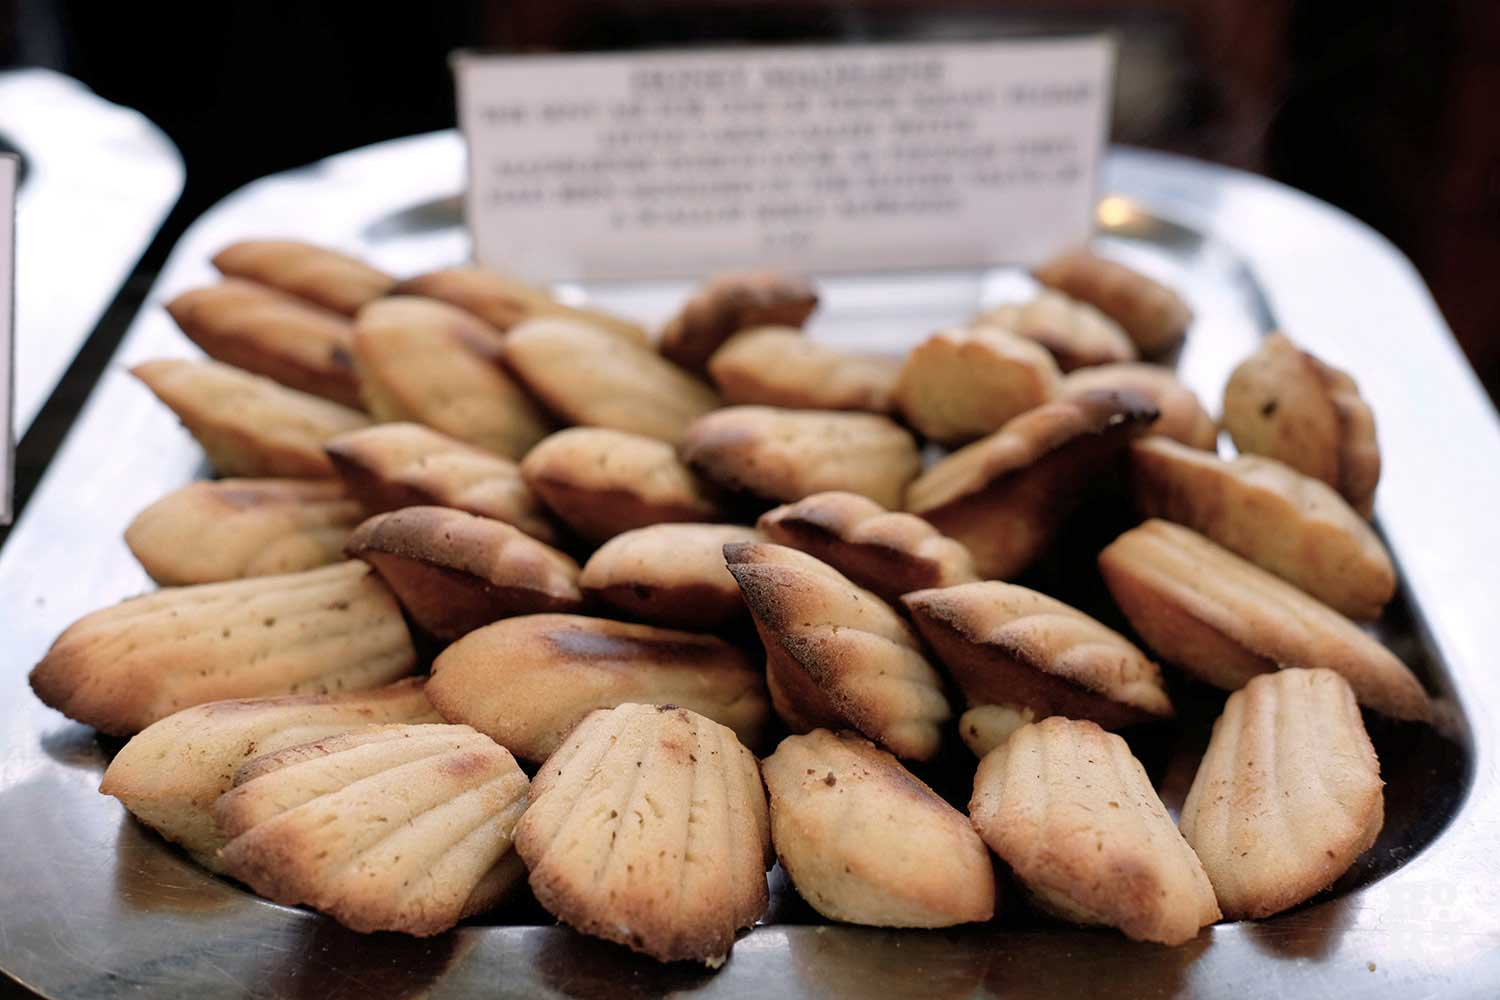 Madeleines at the Saint Sugar of London stall on Roman Road